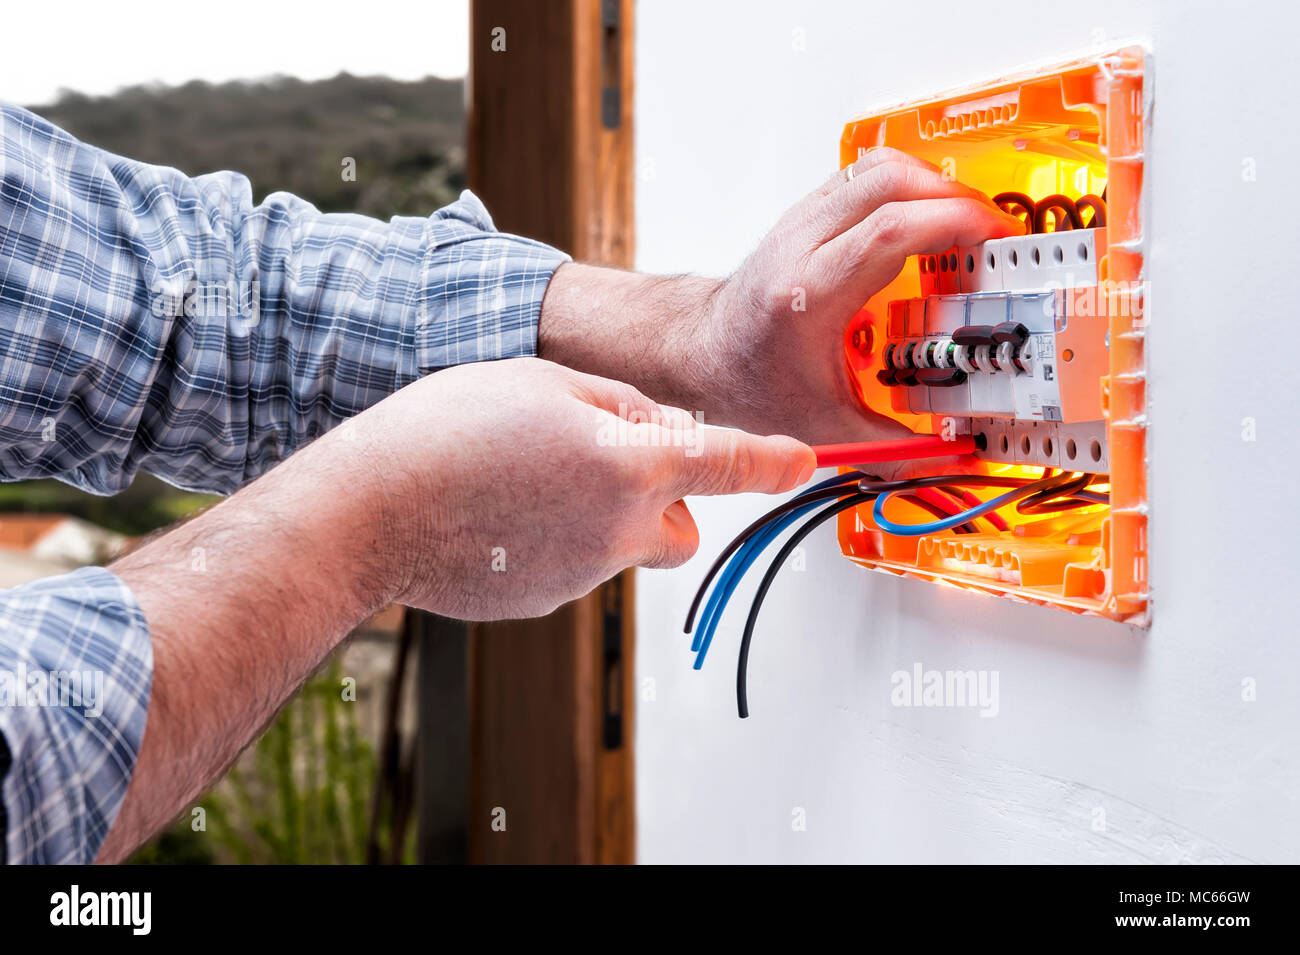 Circuit Breaker Panel Stockfotos & Circuit Breaker Panel Bilder - Alamy